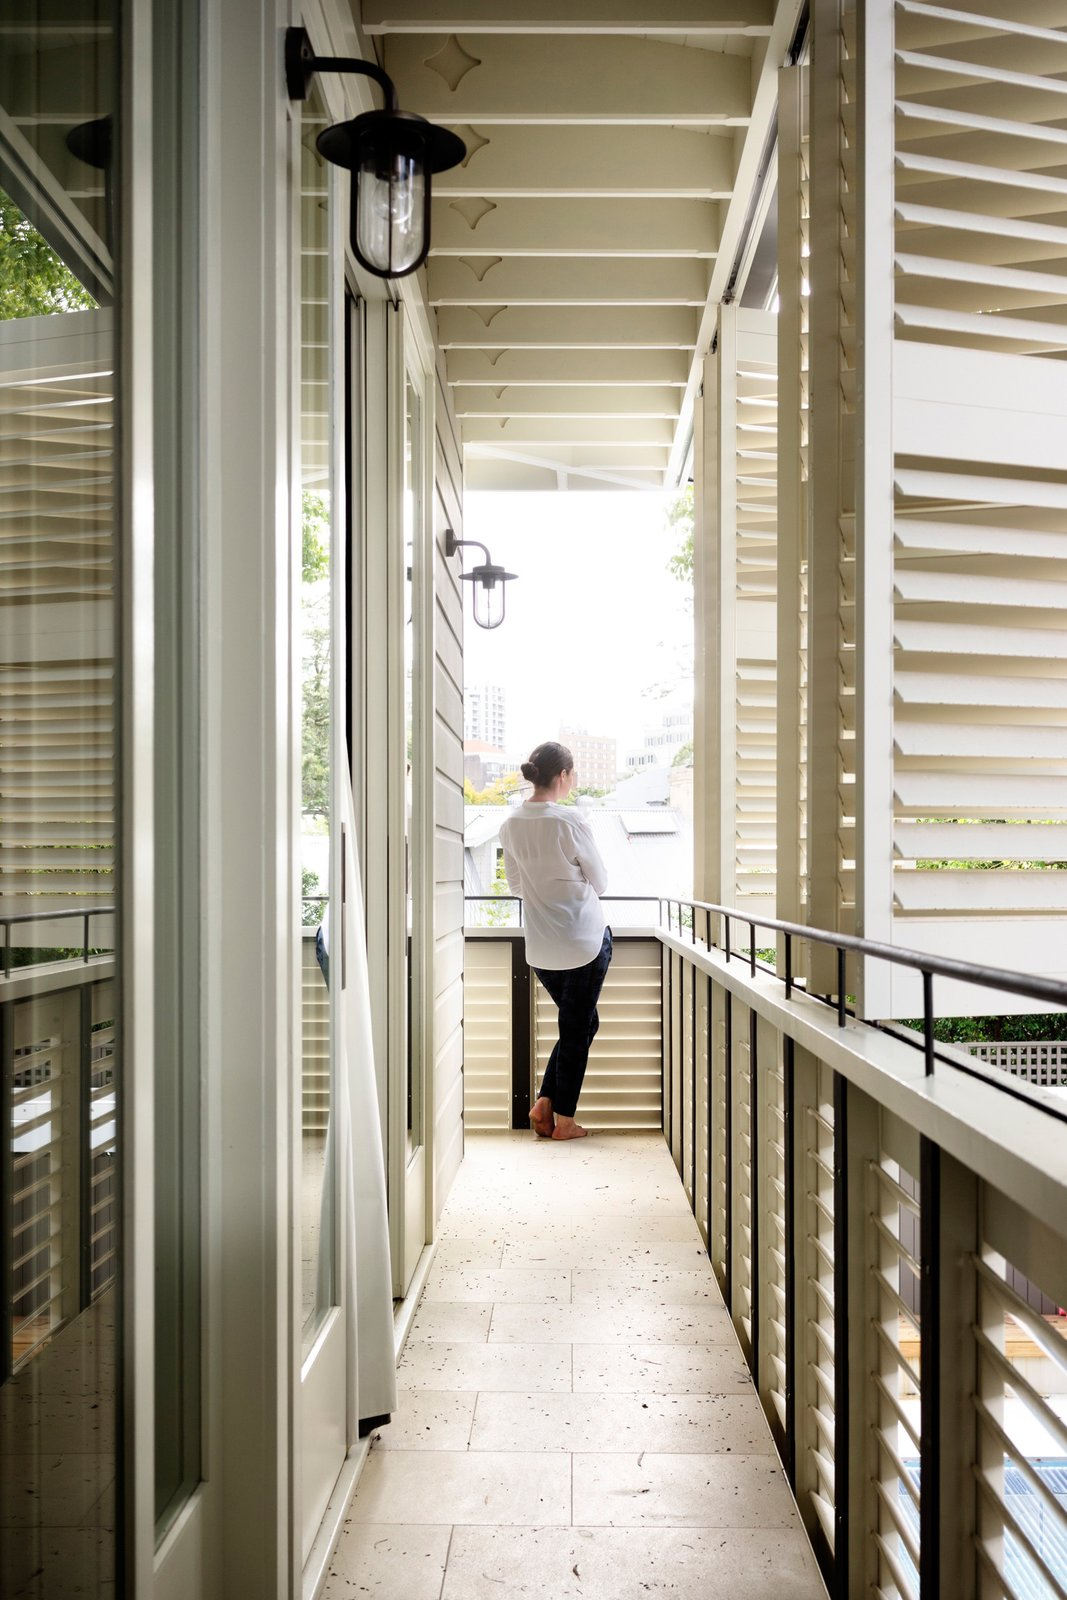 The loggia, or first floor covered balcony, is also a privacy screen that allows filtered air and light and obscures the neighbours' view. The shutters were masterfully constructed by the builder and Shutters Australia. Shutters Australia © Justin Alexander  Loggia in Arcadia by Luigi Rosselli Architects